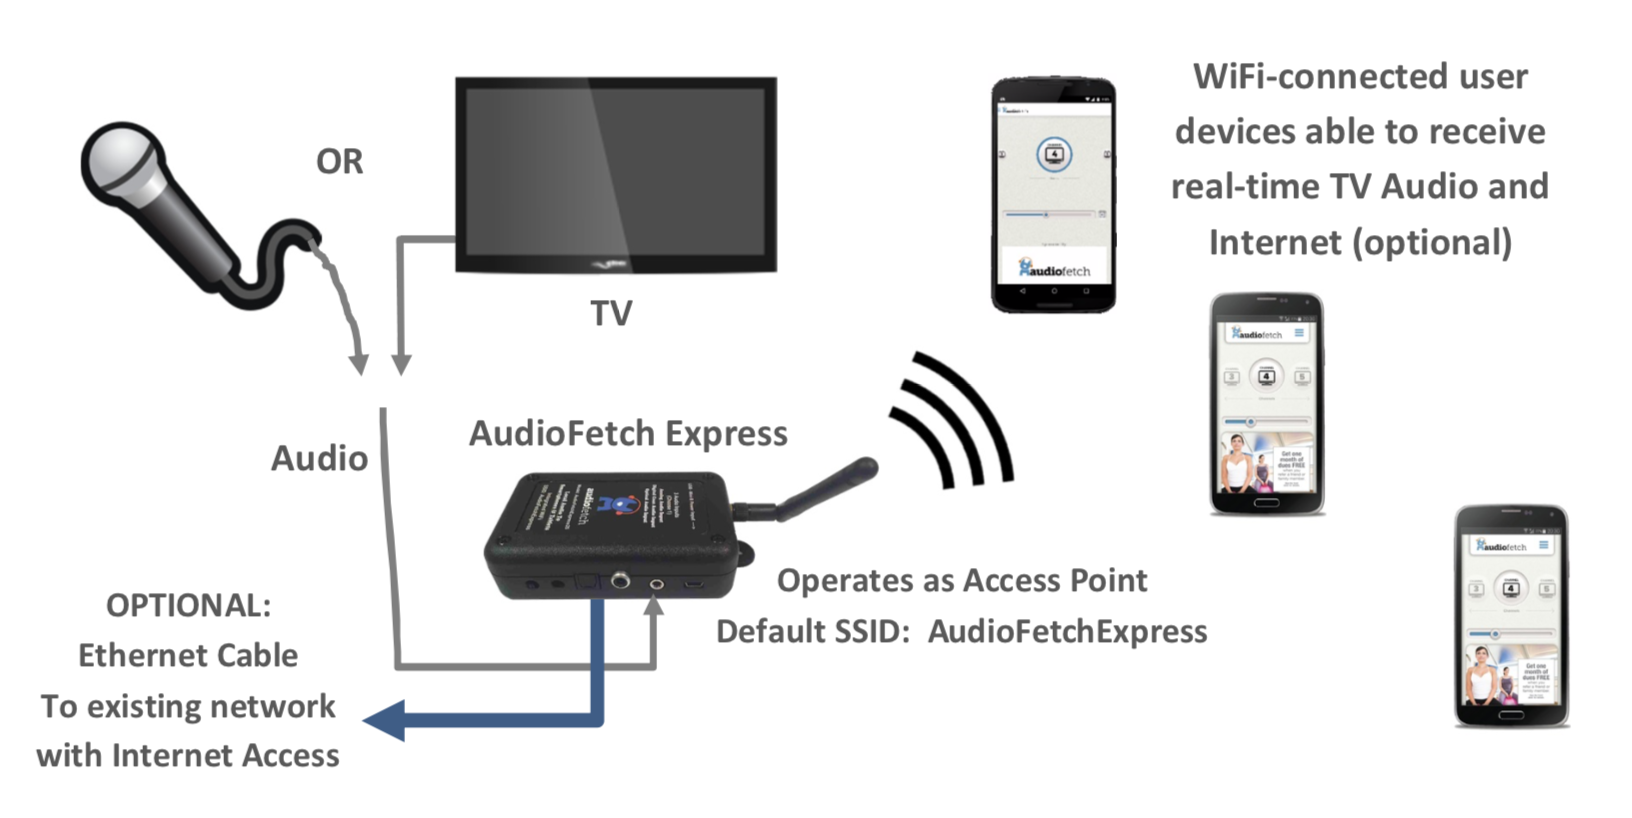 AudioFetch Express - Networking Mode - Access Point